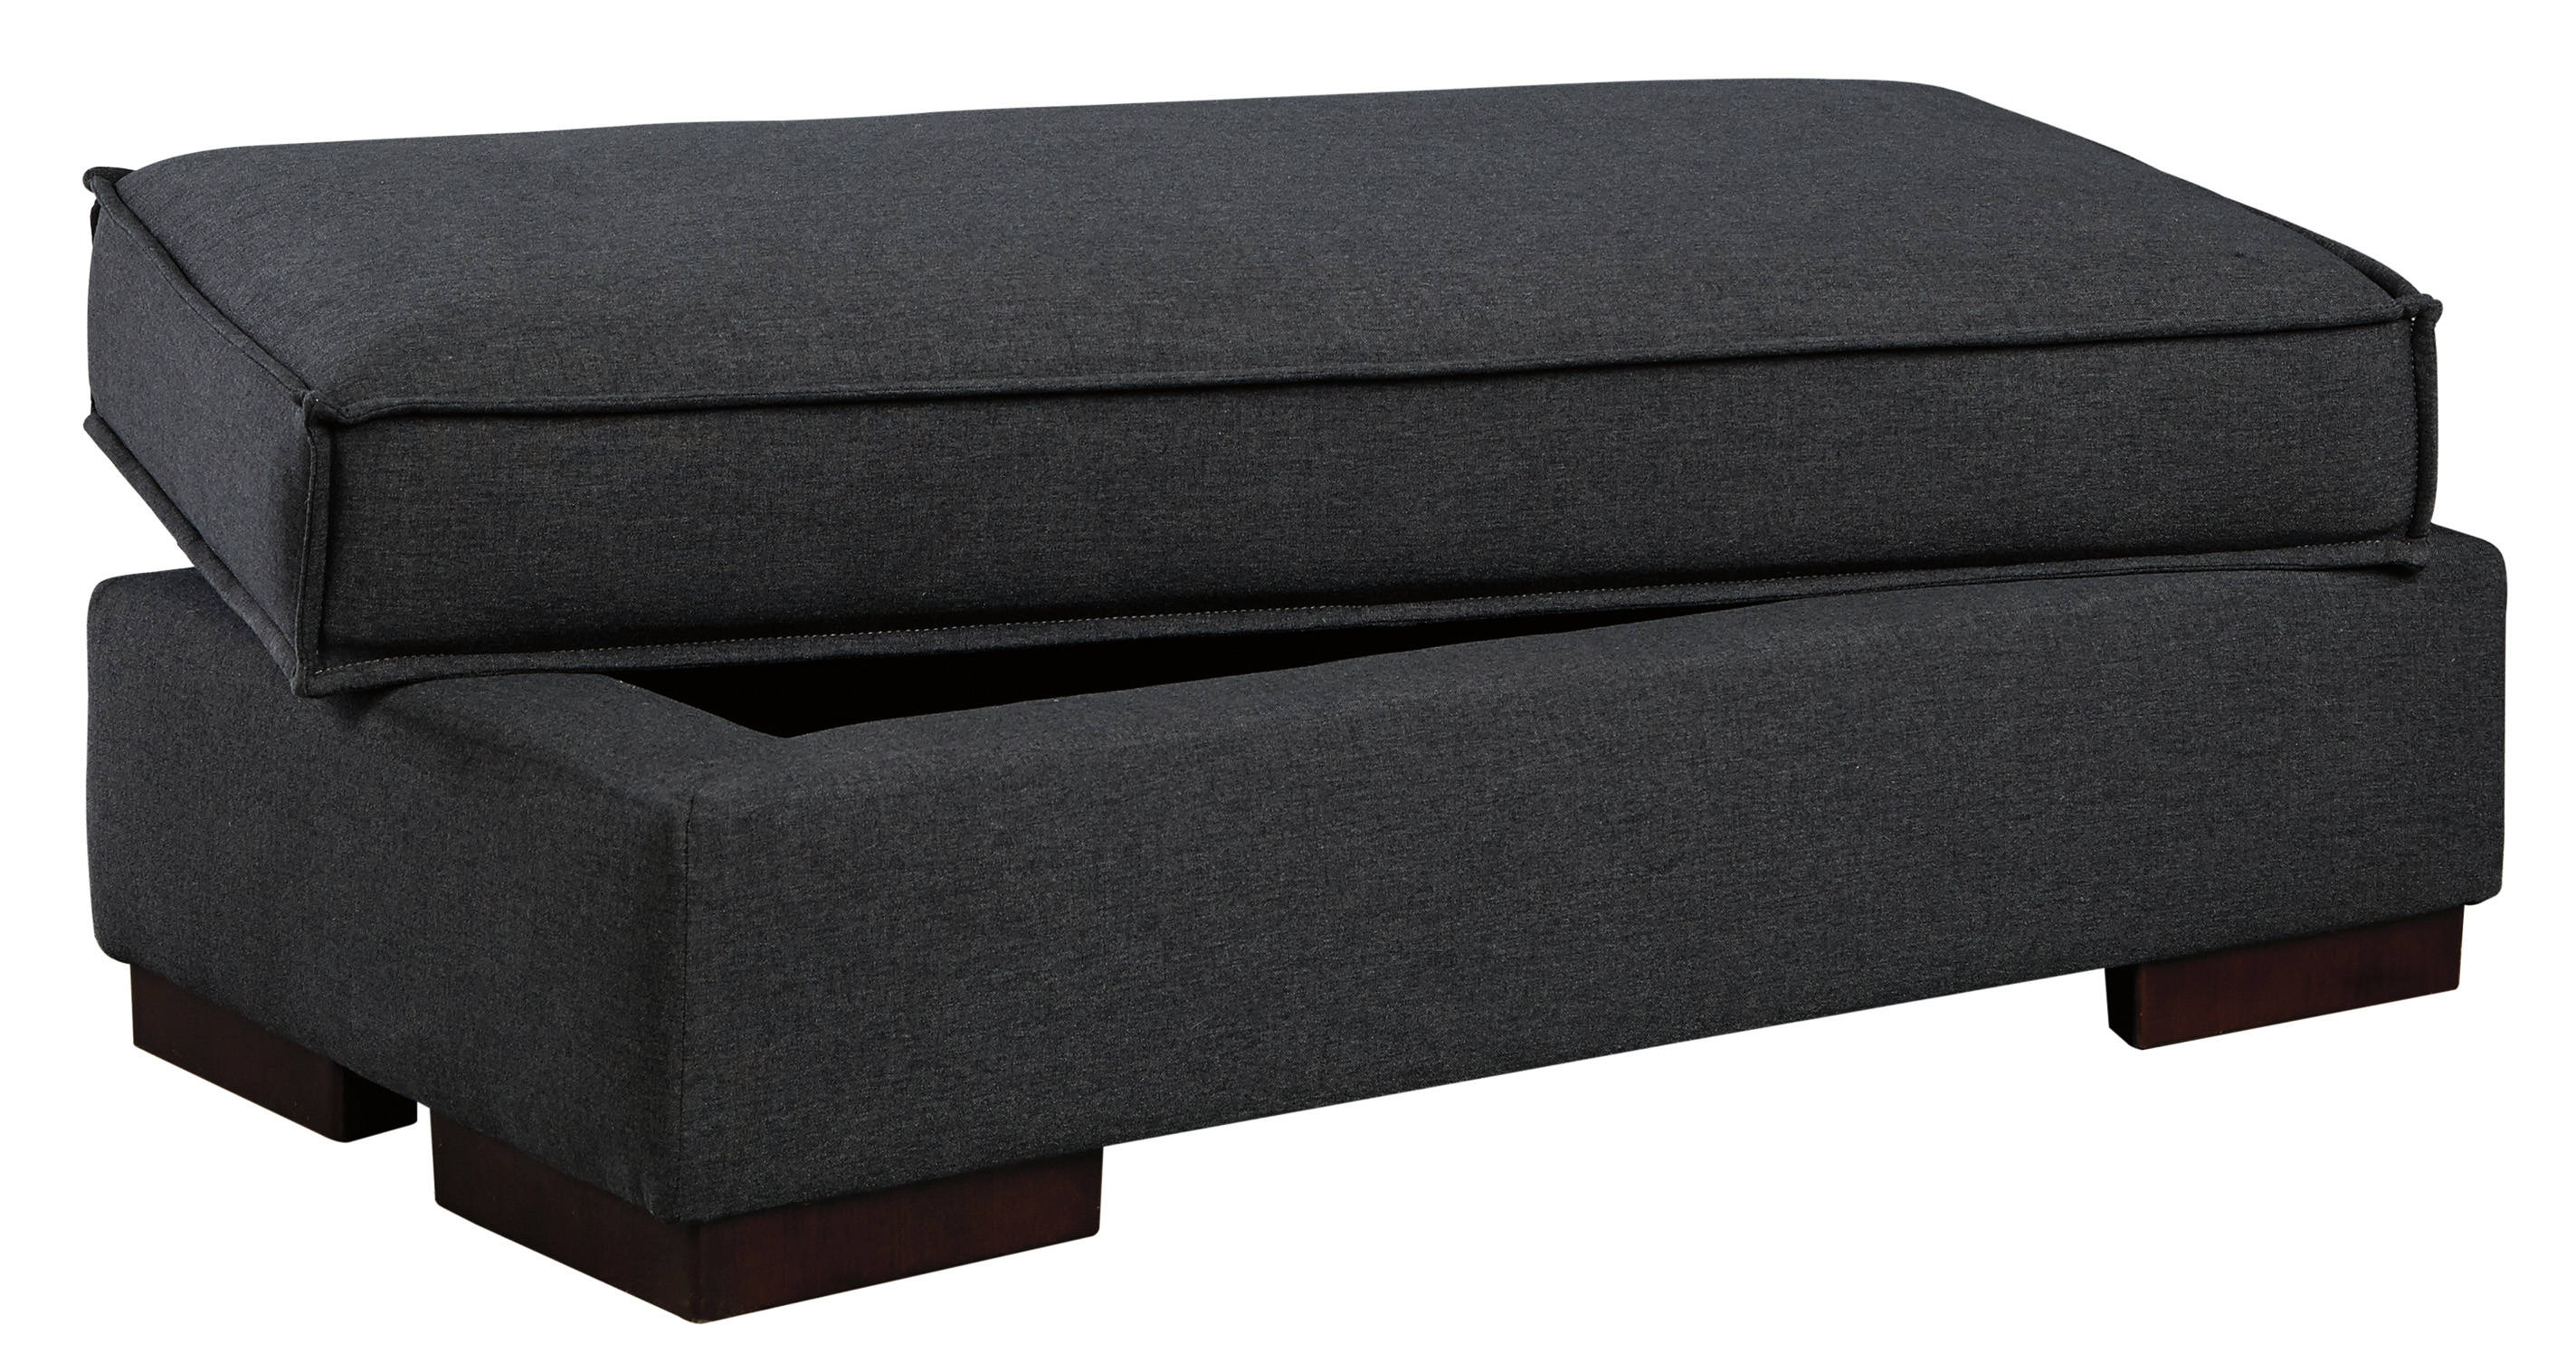 furniture kane futon futons with products athena cocktail living ottoman ottomans s room